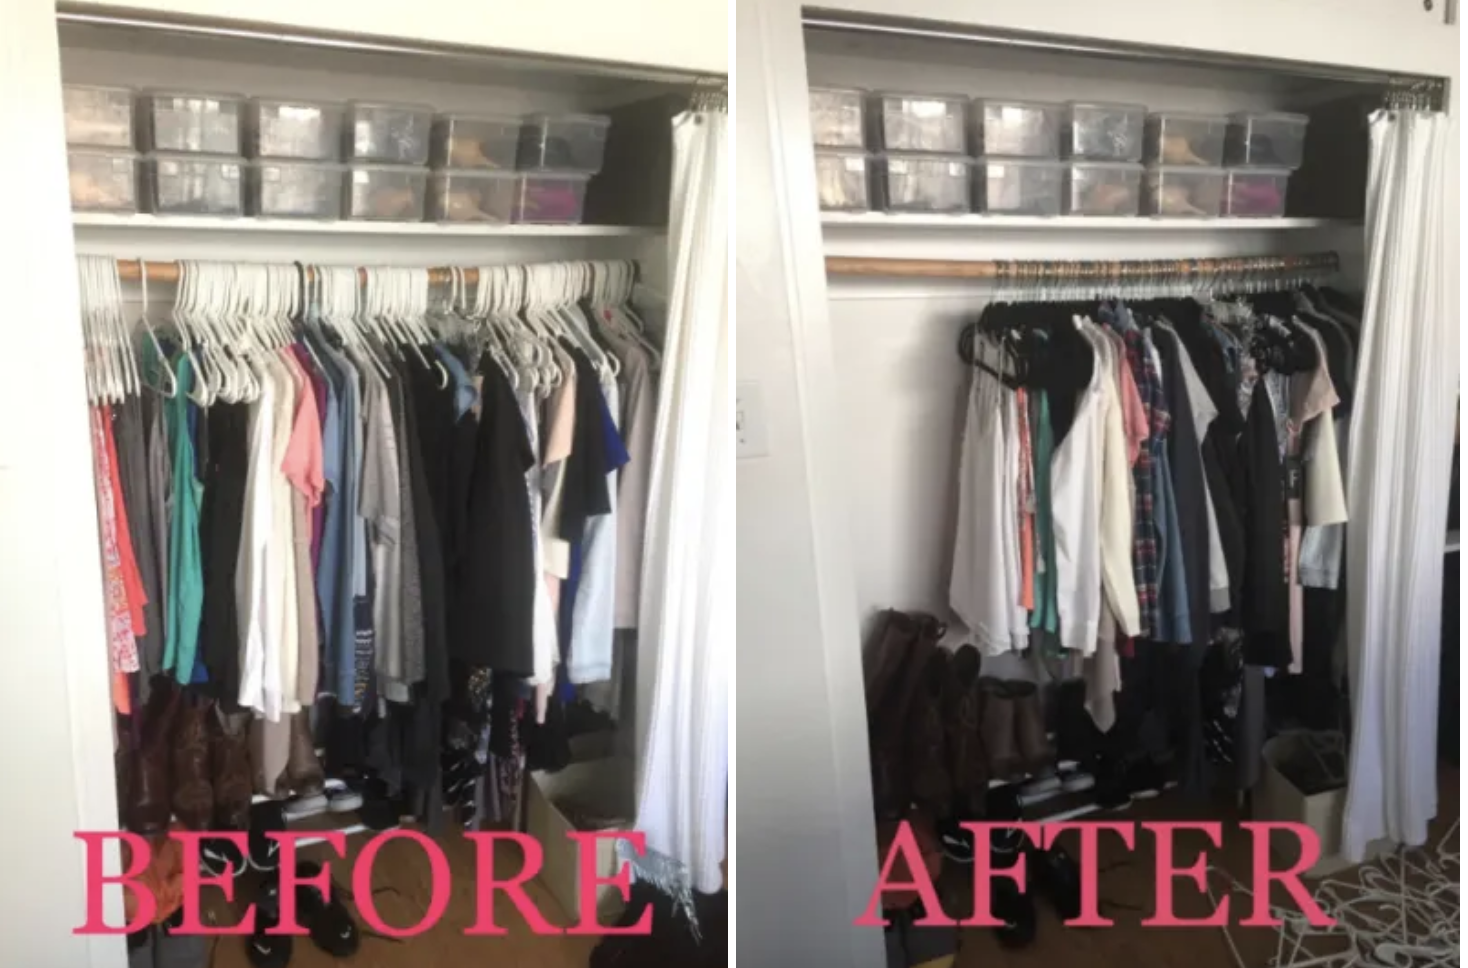 Reviewer photo of before and after using the hangers, on the left a closet filled all the way across with hanger and clothes, on the right the same closet but this time the clothes are only taking up about half as much space with the velvet hangers